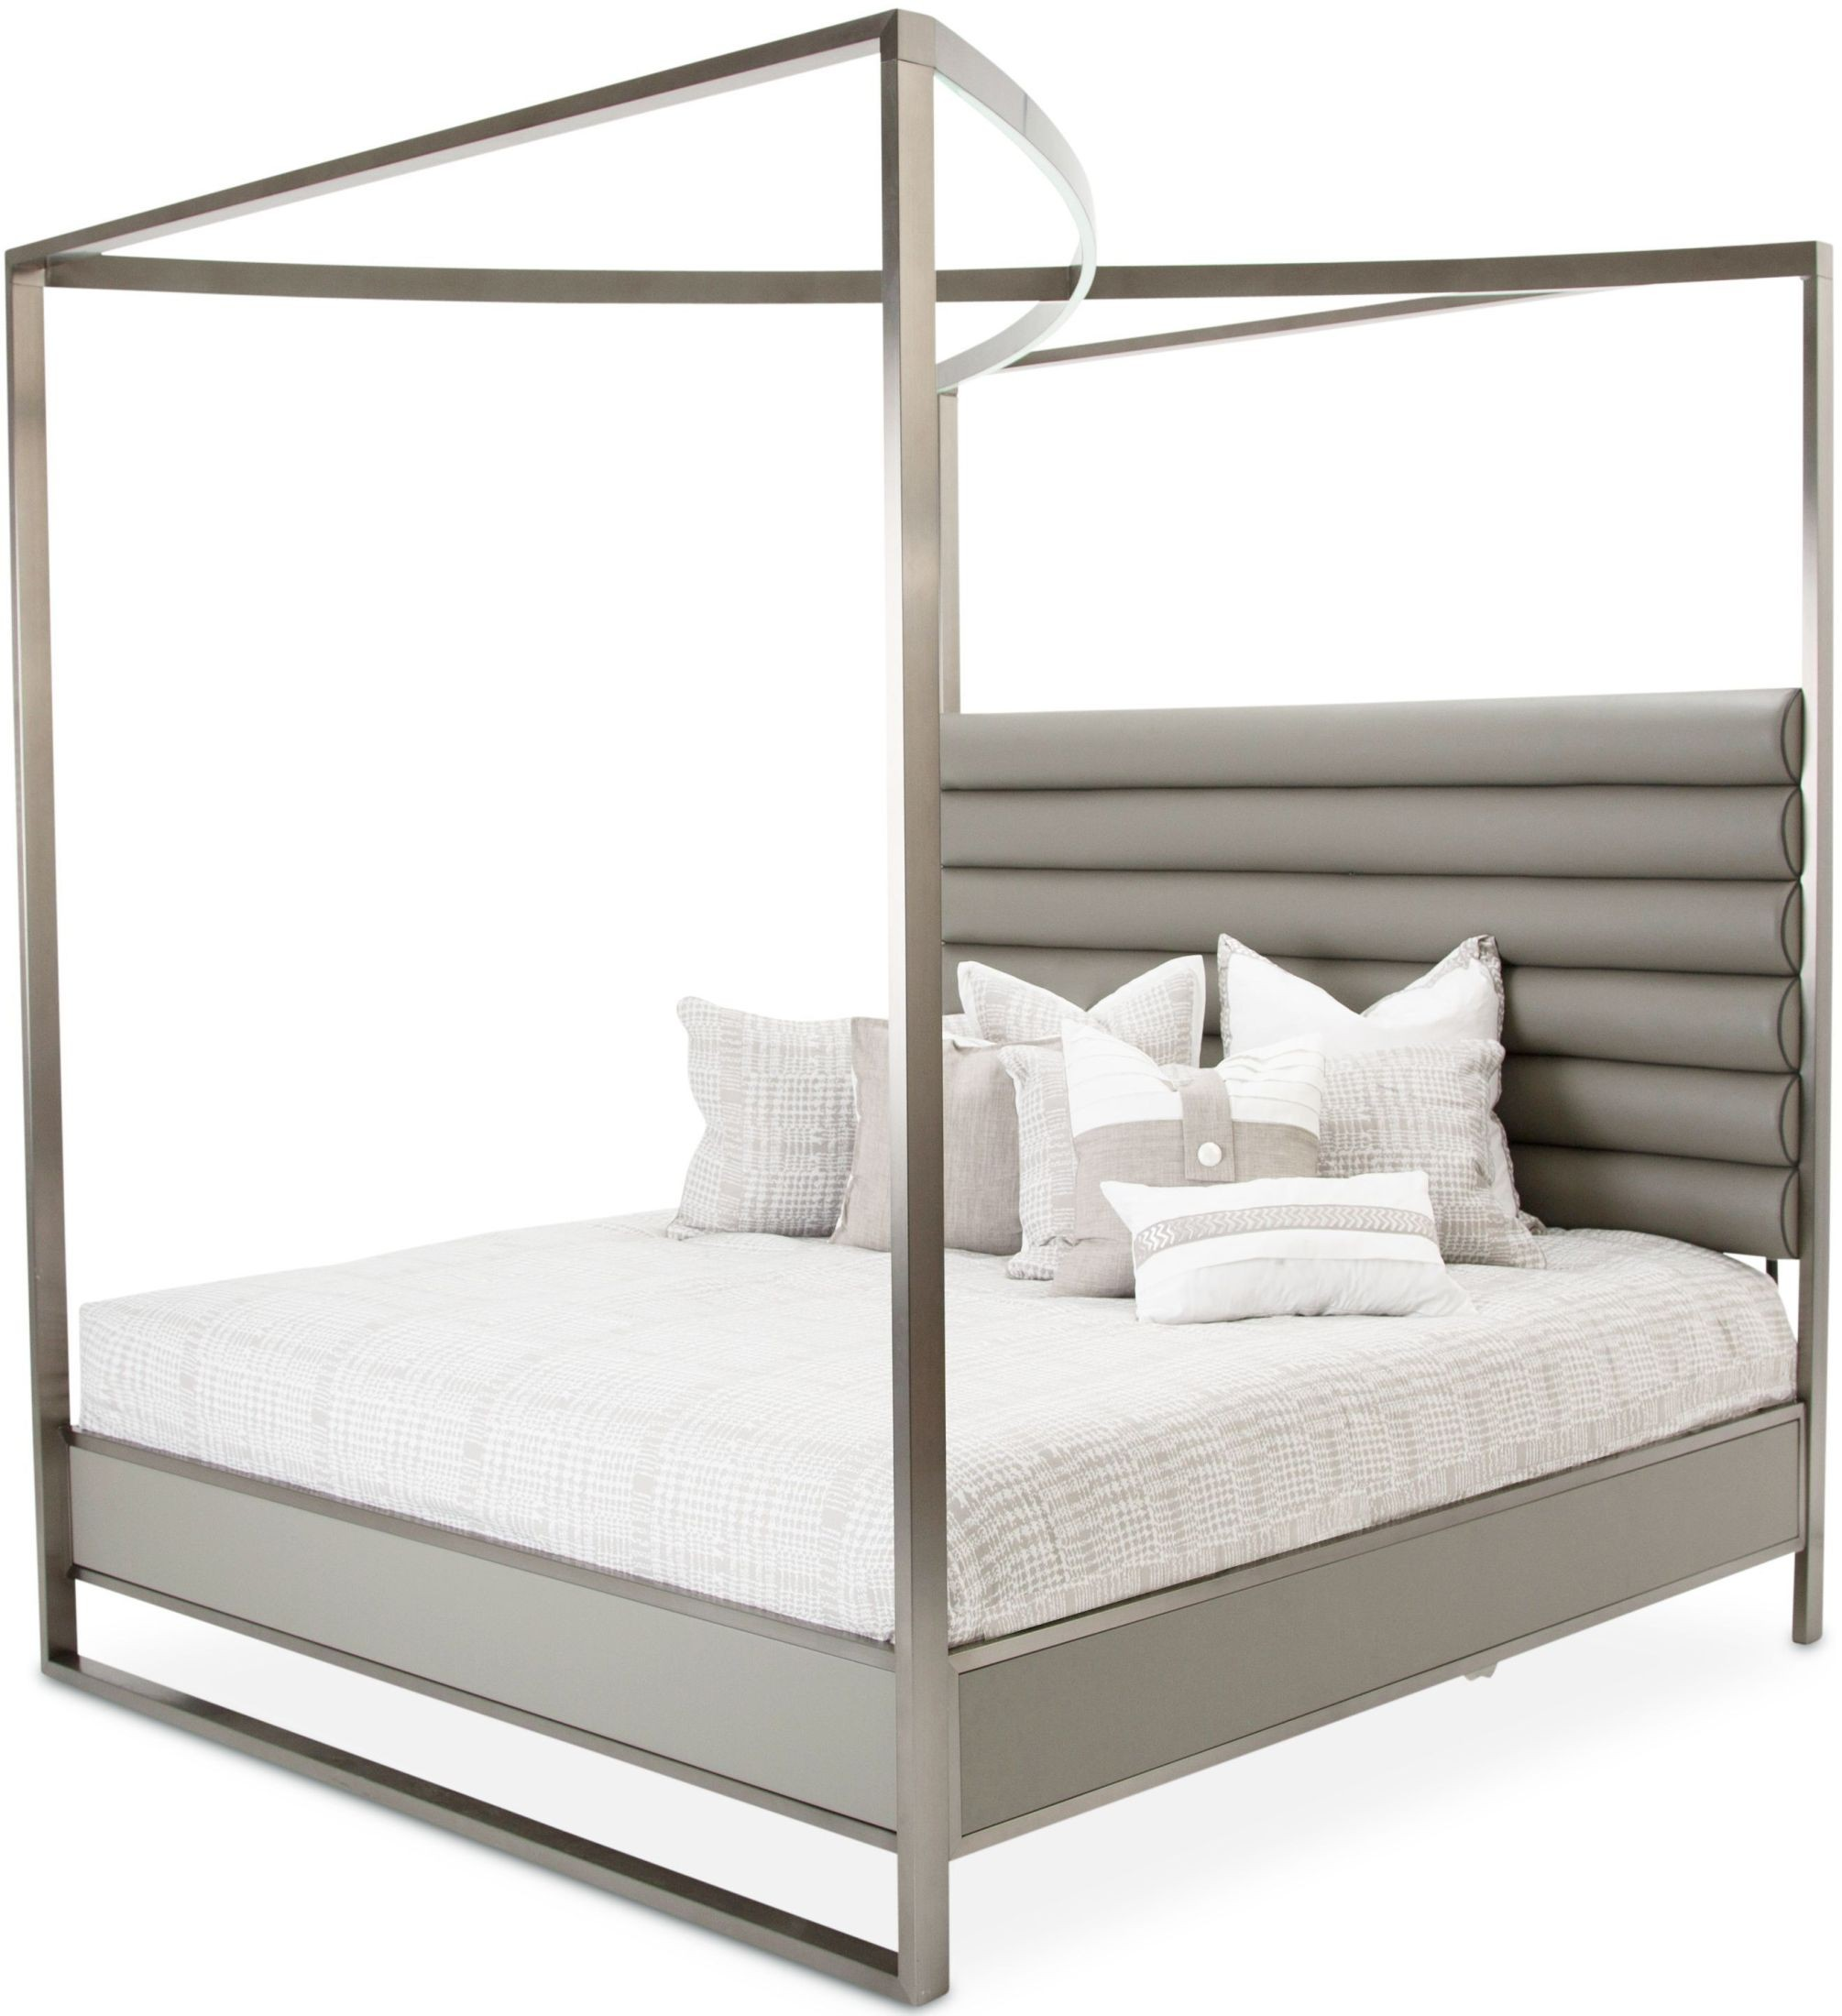 Metro Lights Midnight King Metal Canopy Bed From Aico